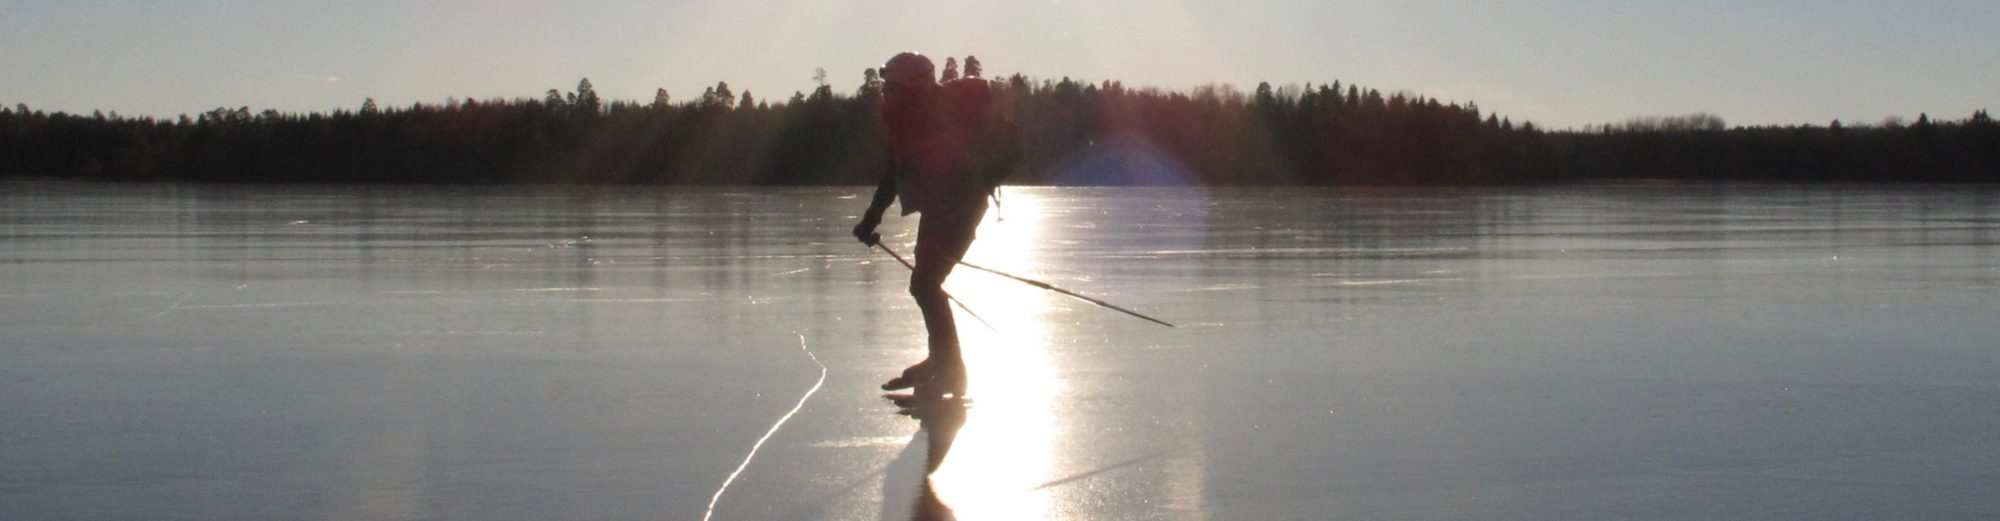 Waterland Sweden – In Water and on Ice – Kayaking and Skating